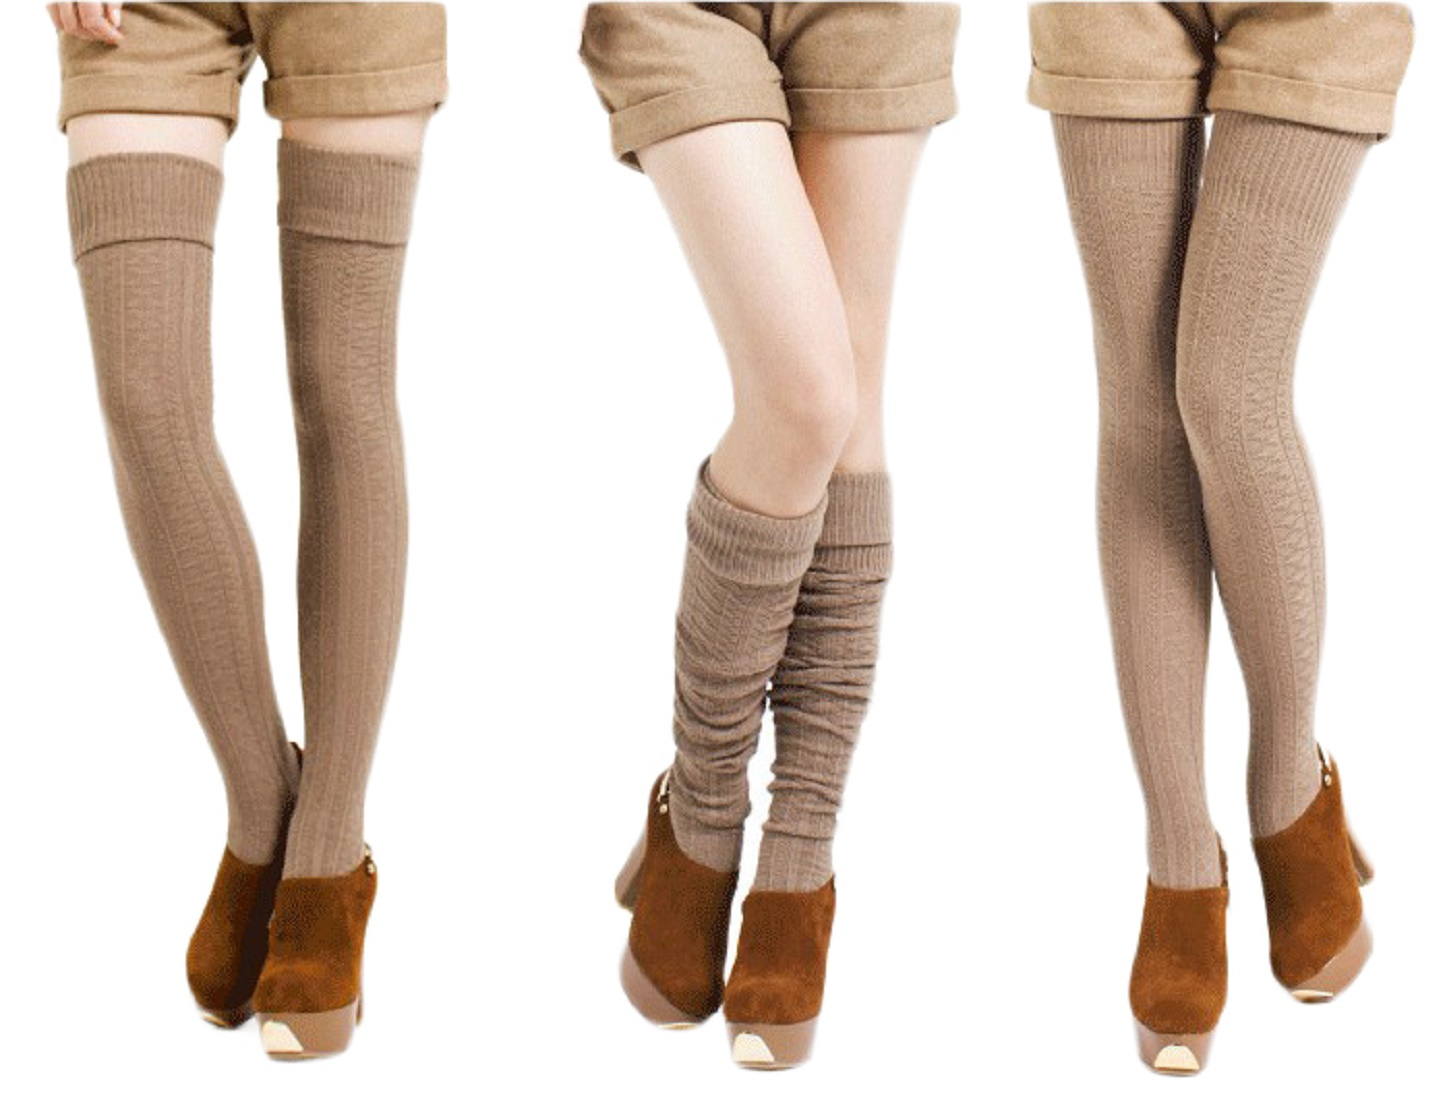 As they on the different pairs of thigh high